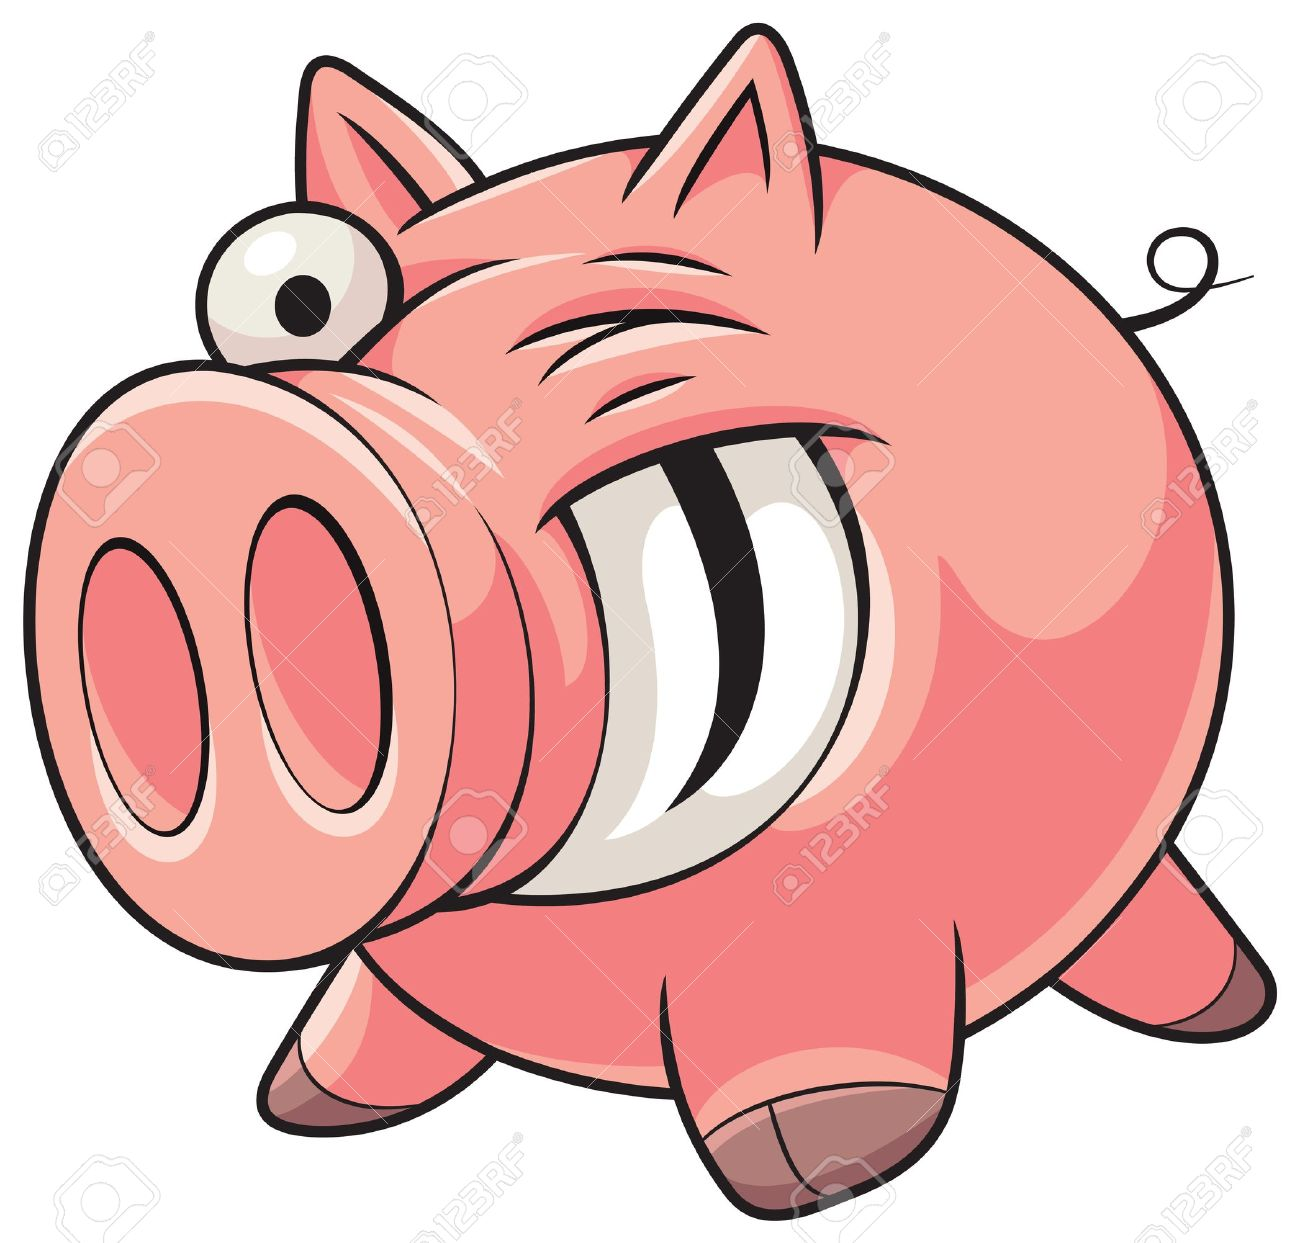 80 688 pig stock vector illustration and royalty free pig clipart